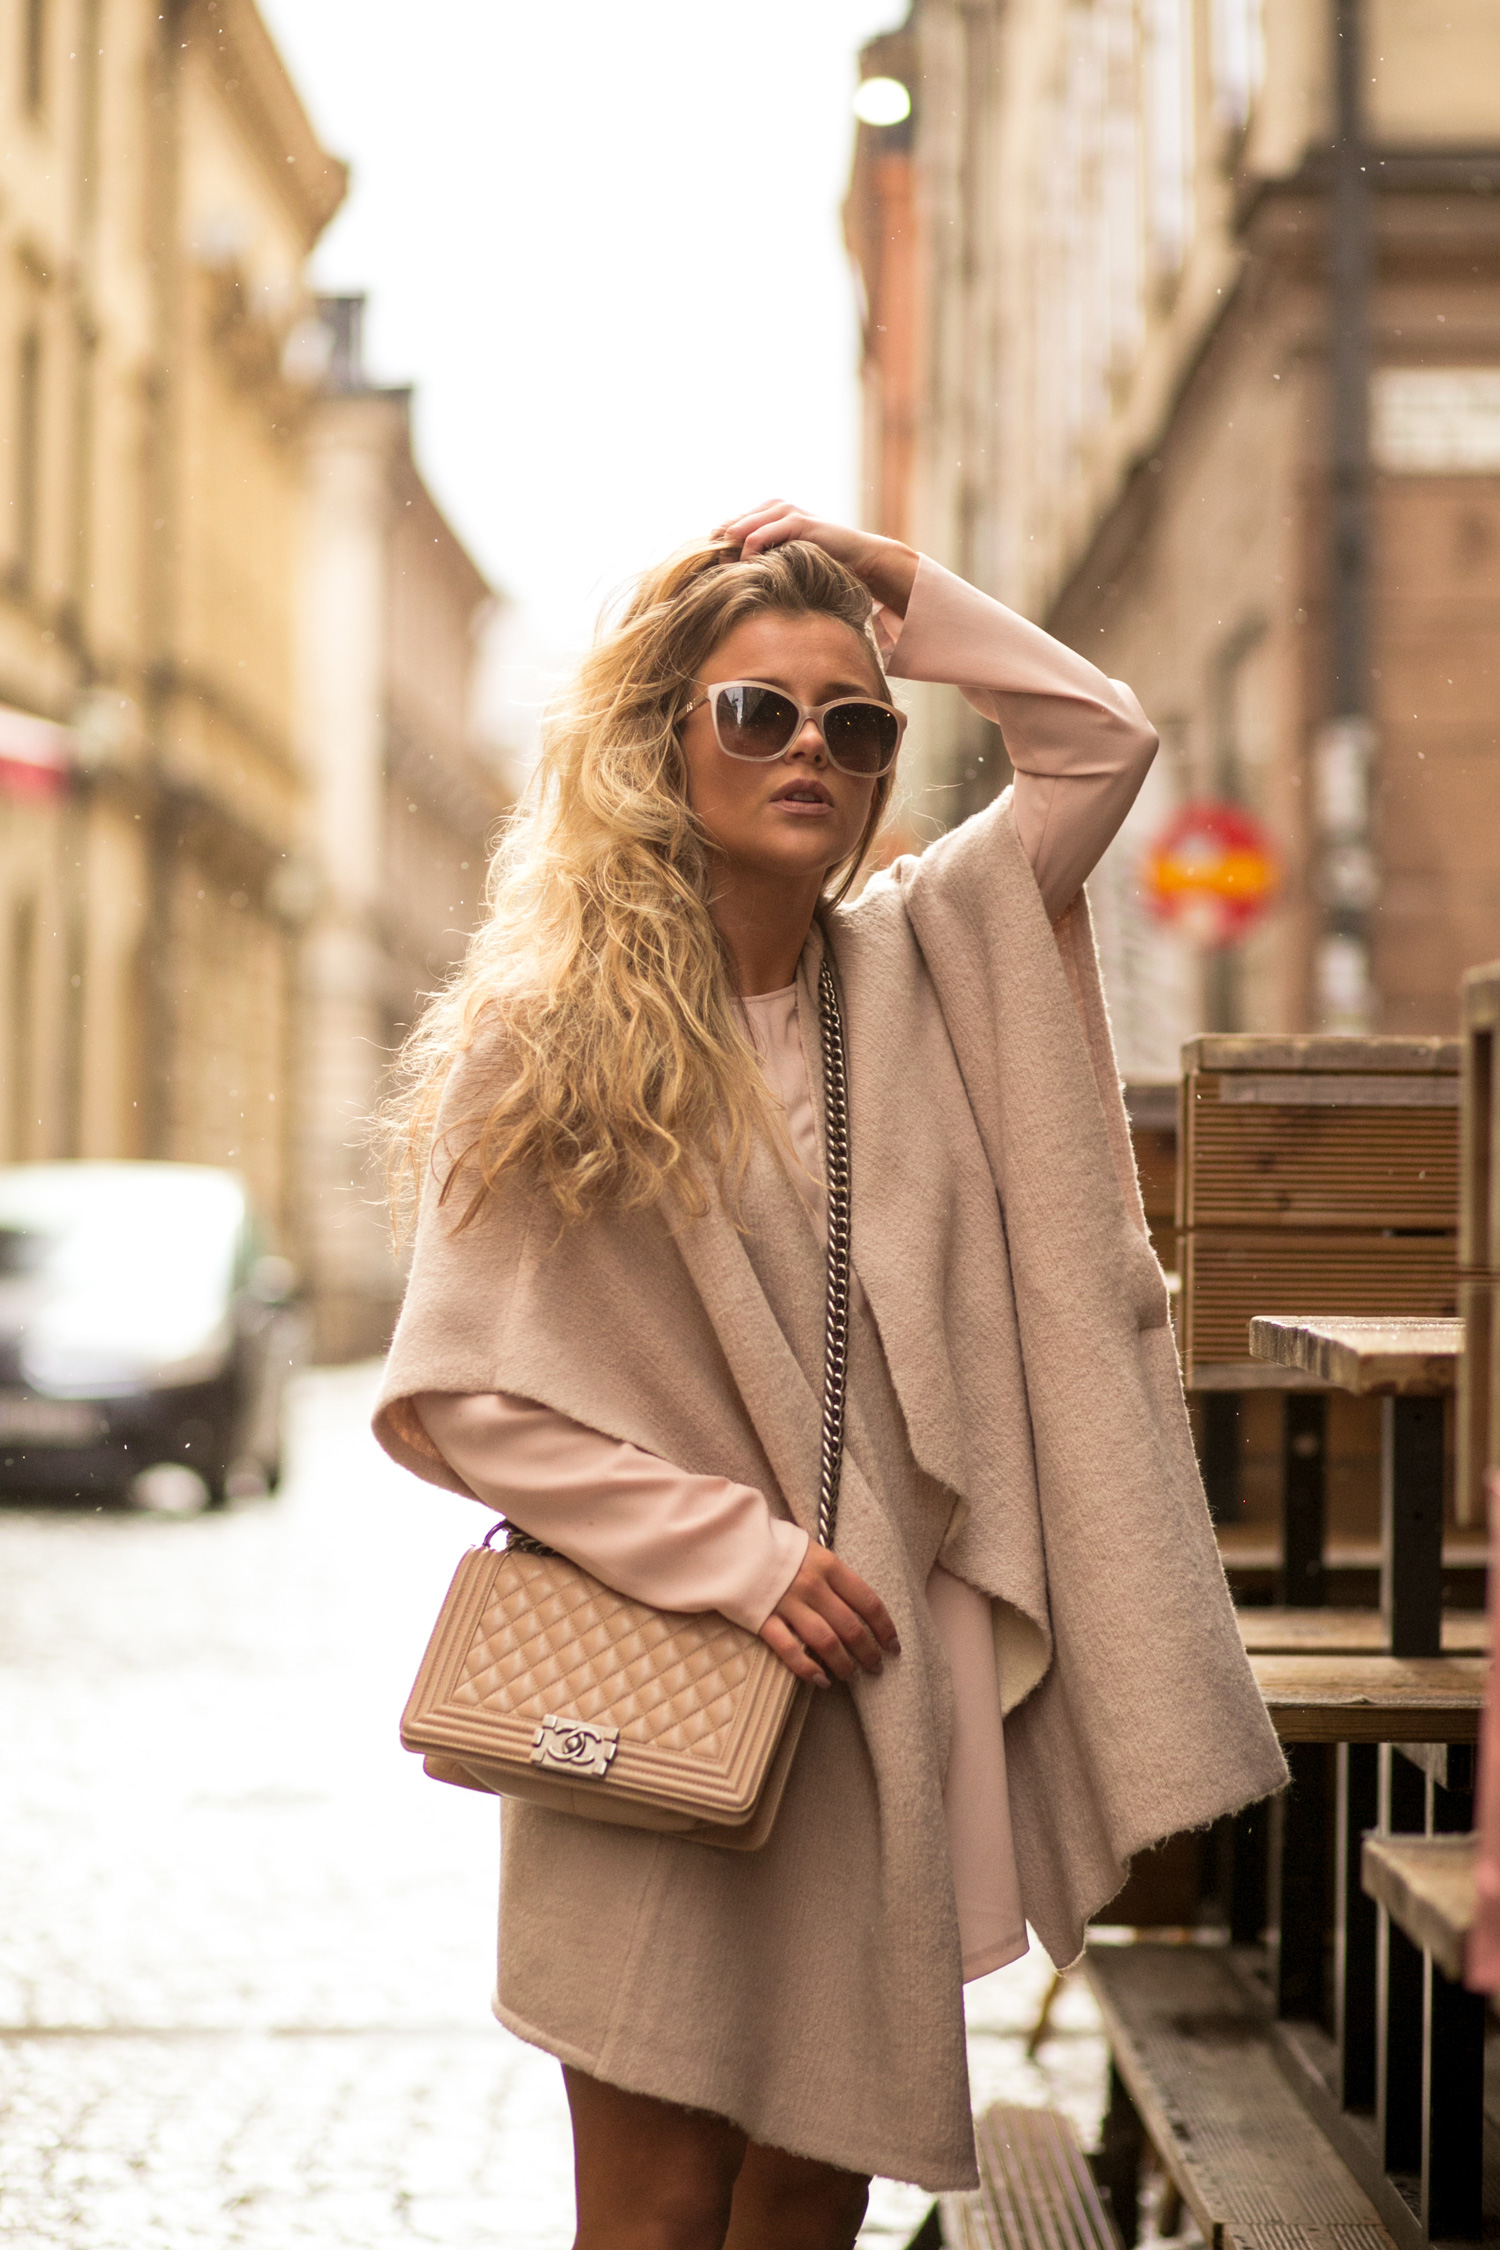 012-stockholm-blogger-fashion.jpg